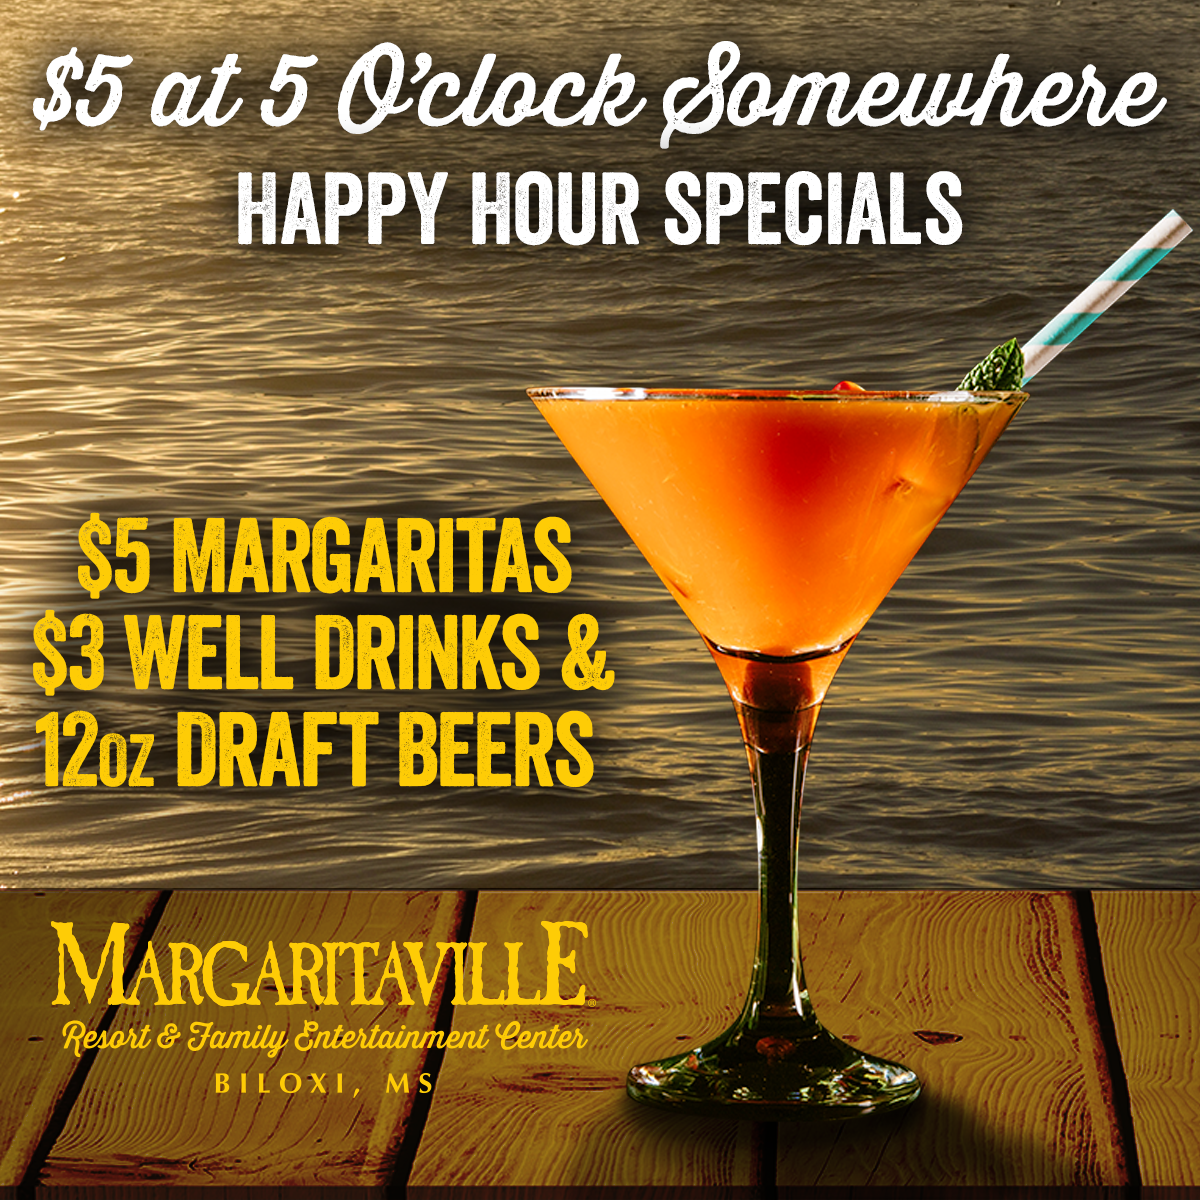 Happy Happy Hour Biloxi! Monday thru Friday from 5pm to 8pm.